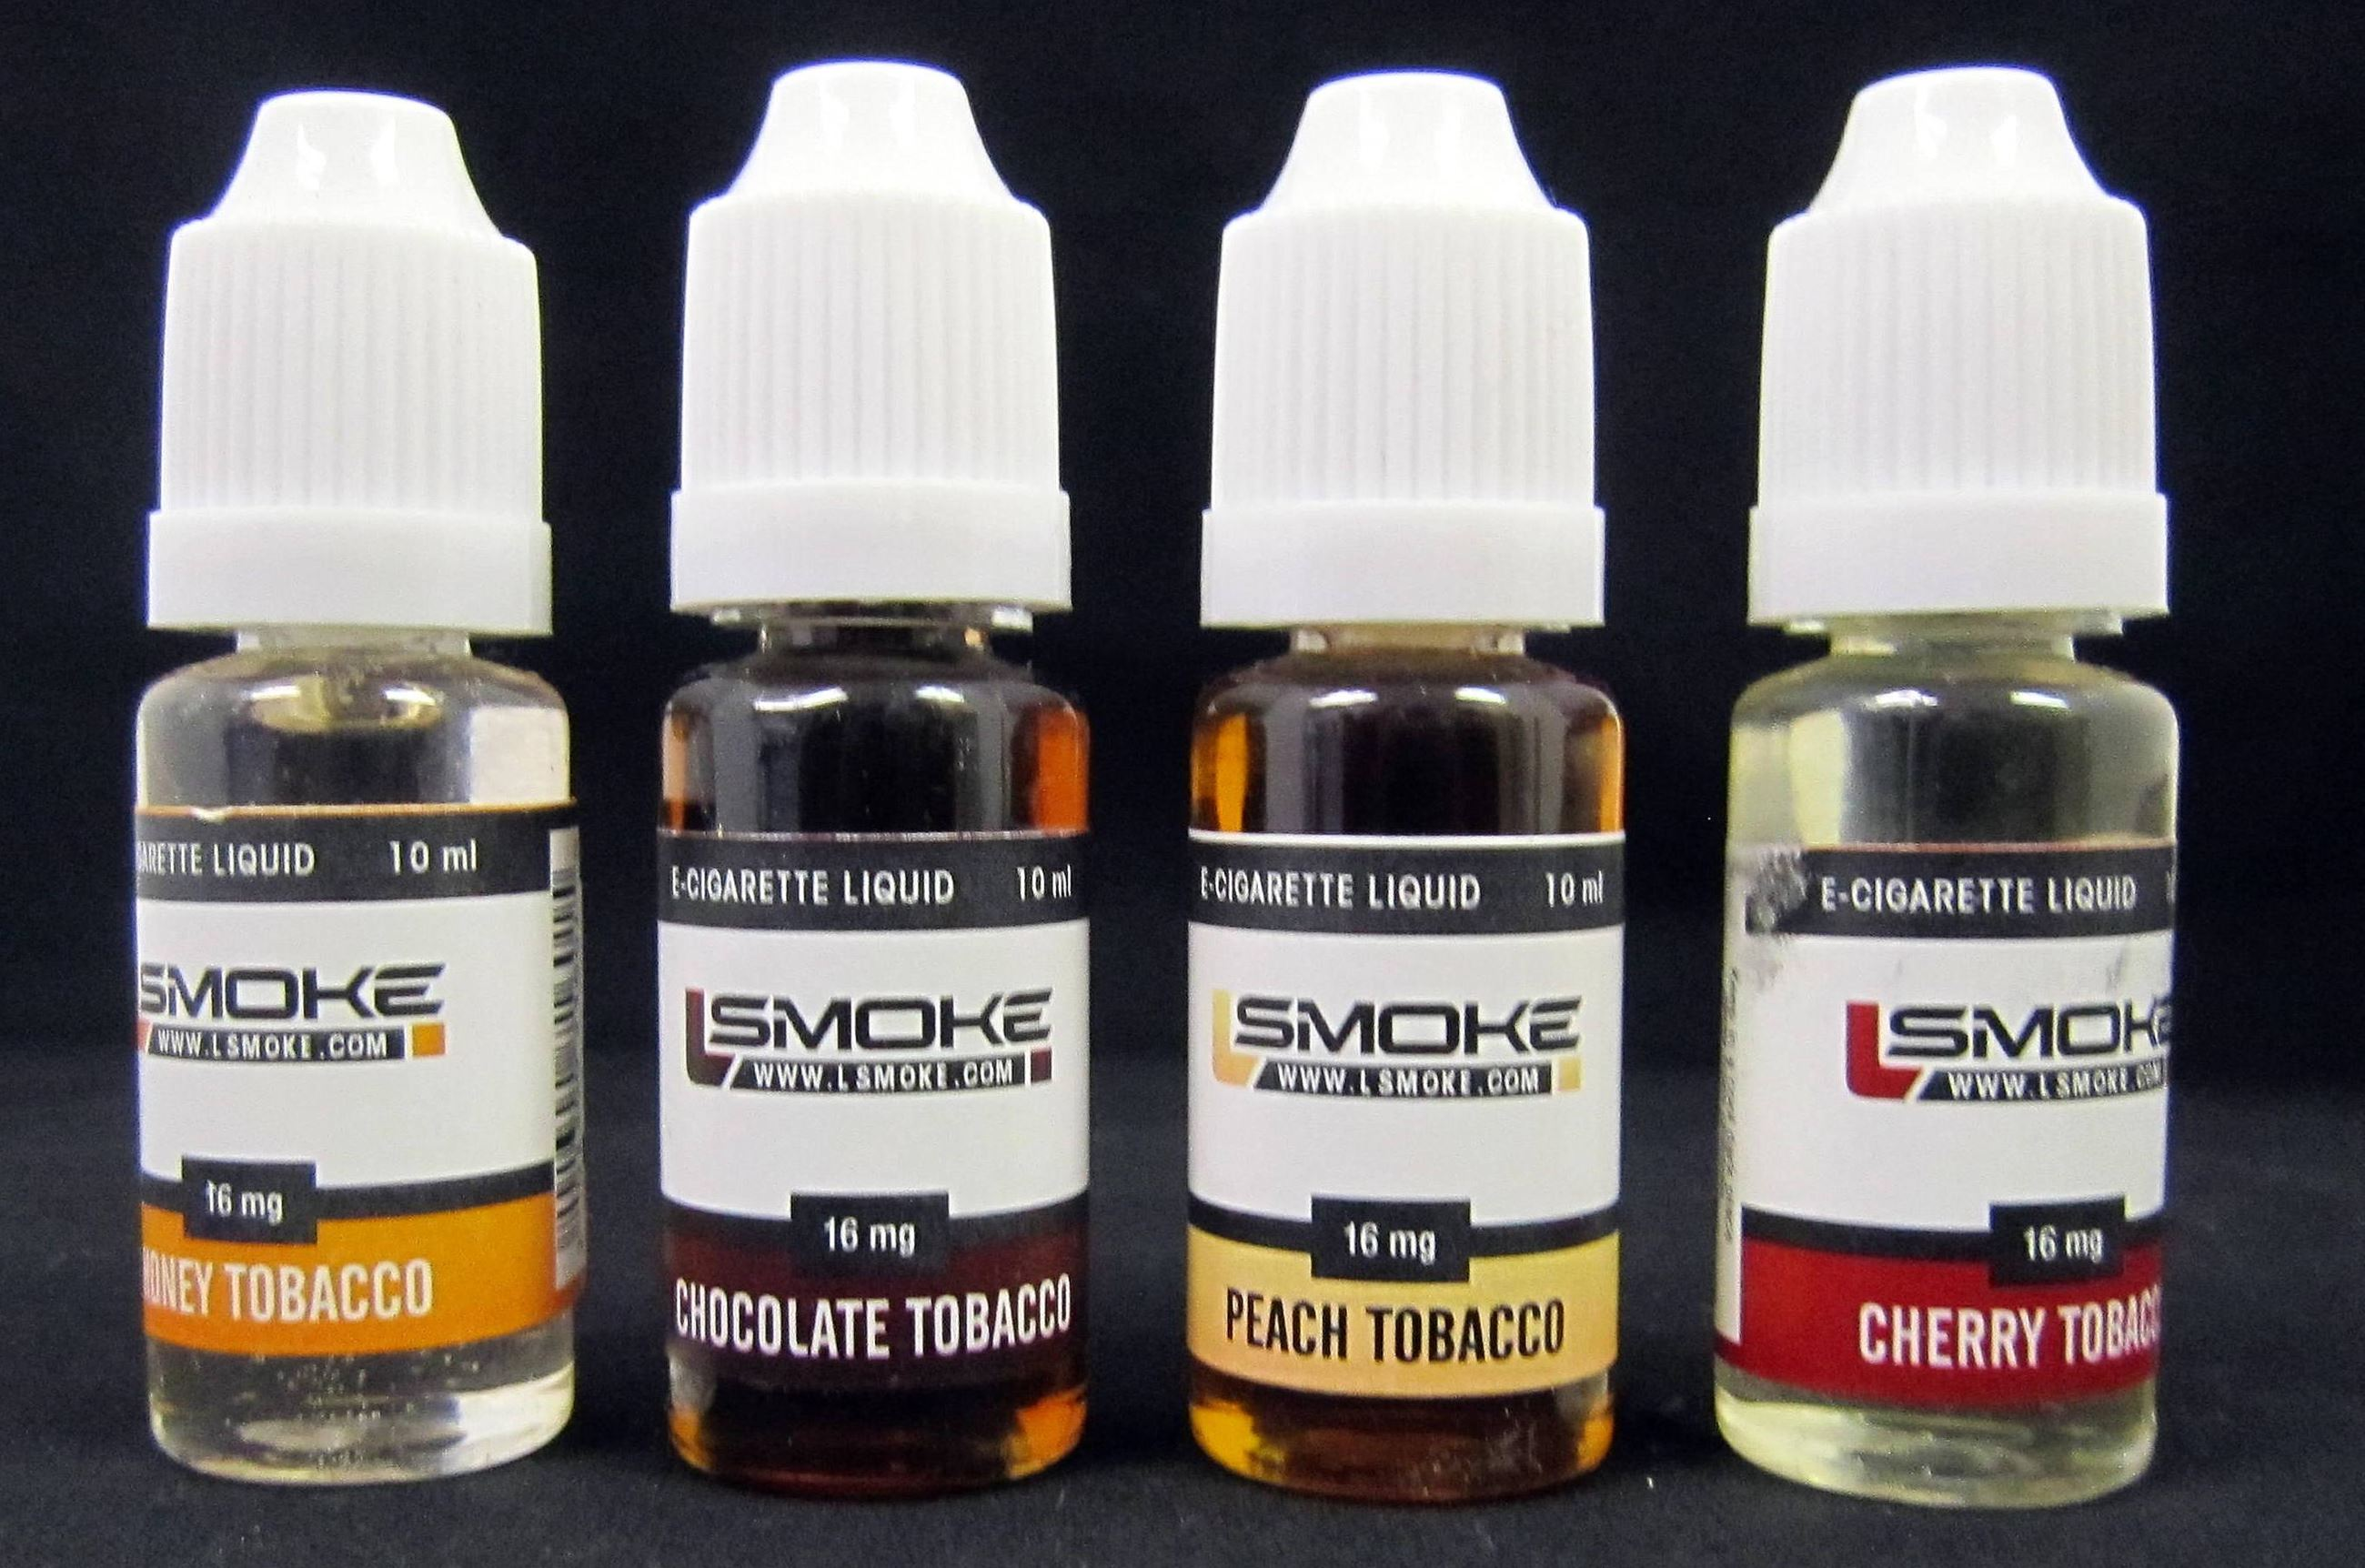 Example bottles of liquid nicotine.